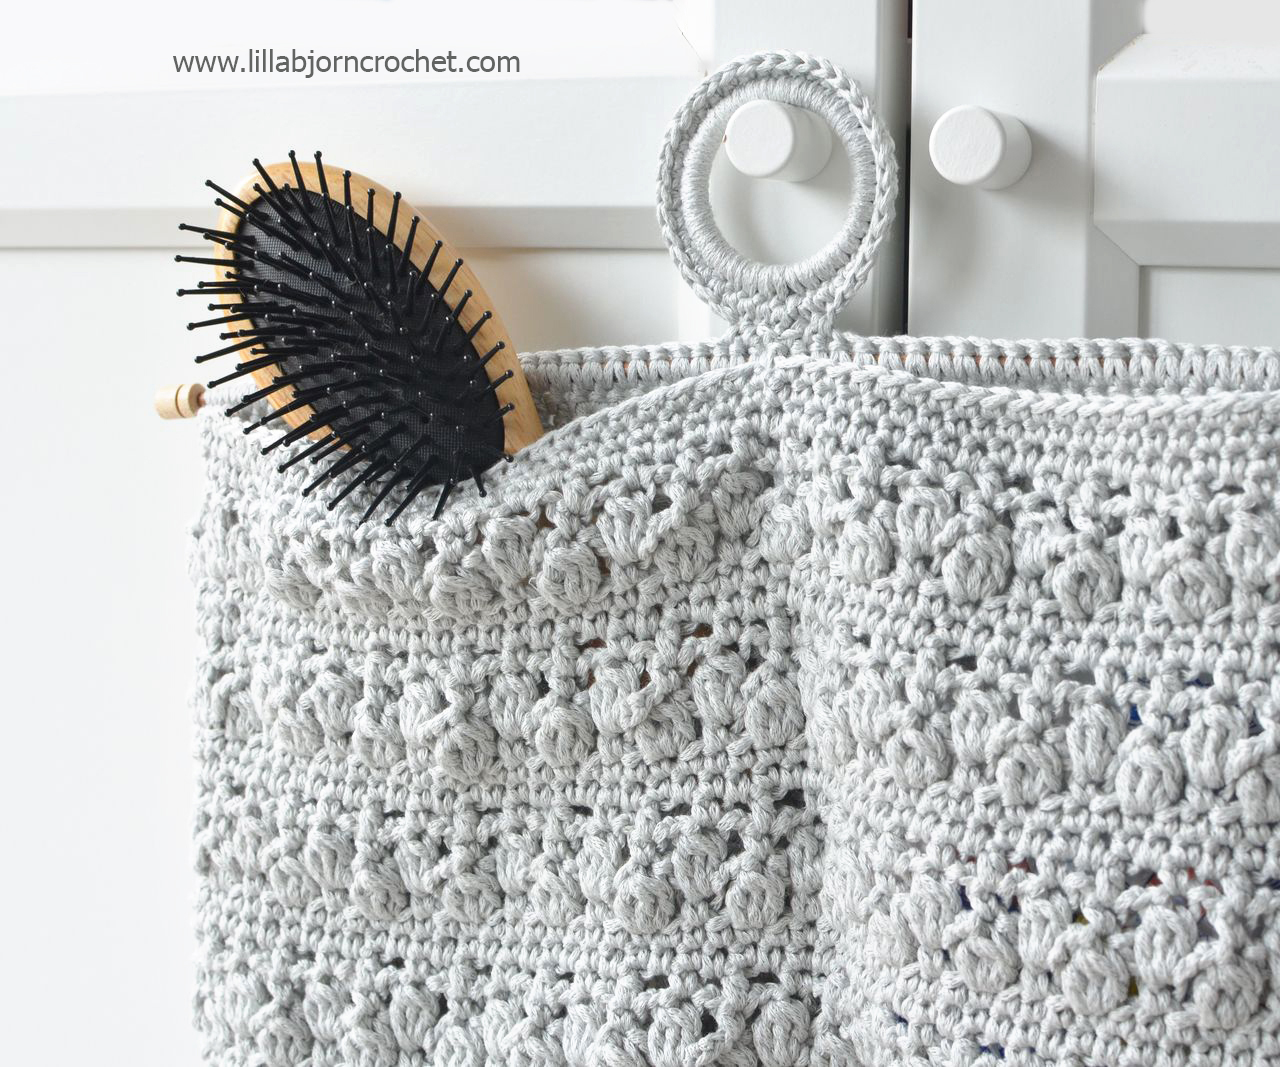 Bathroom Organizer - free crochet pattern by Lilla Bjorn Crochet